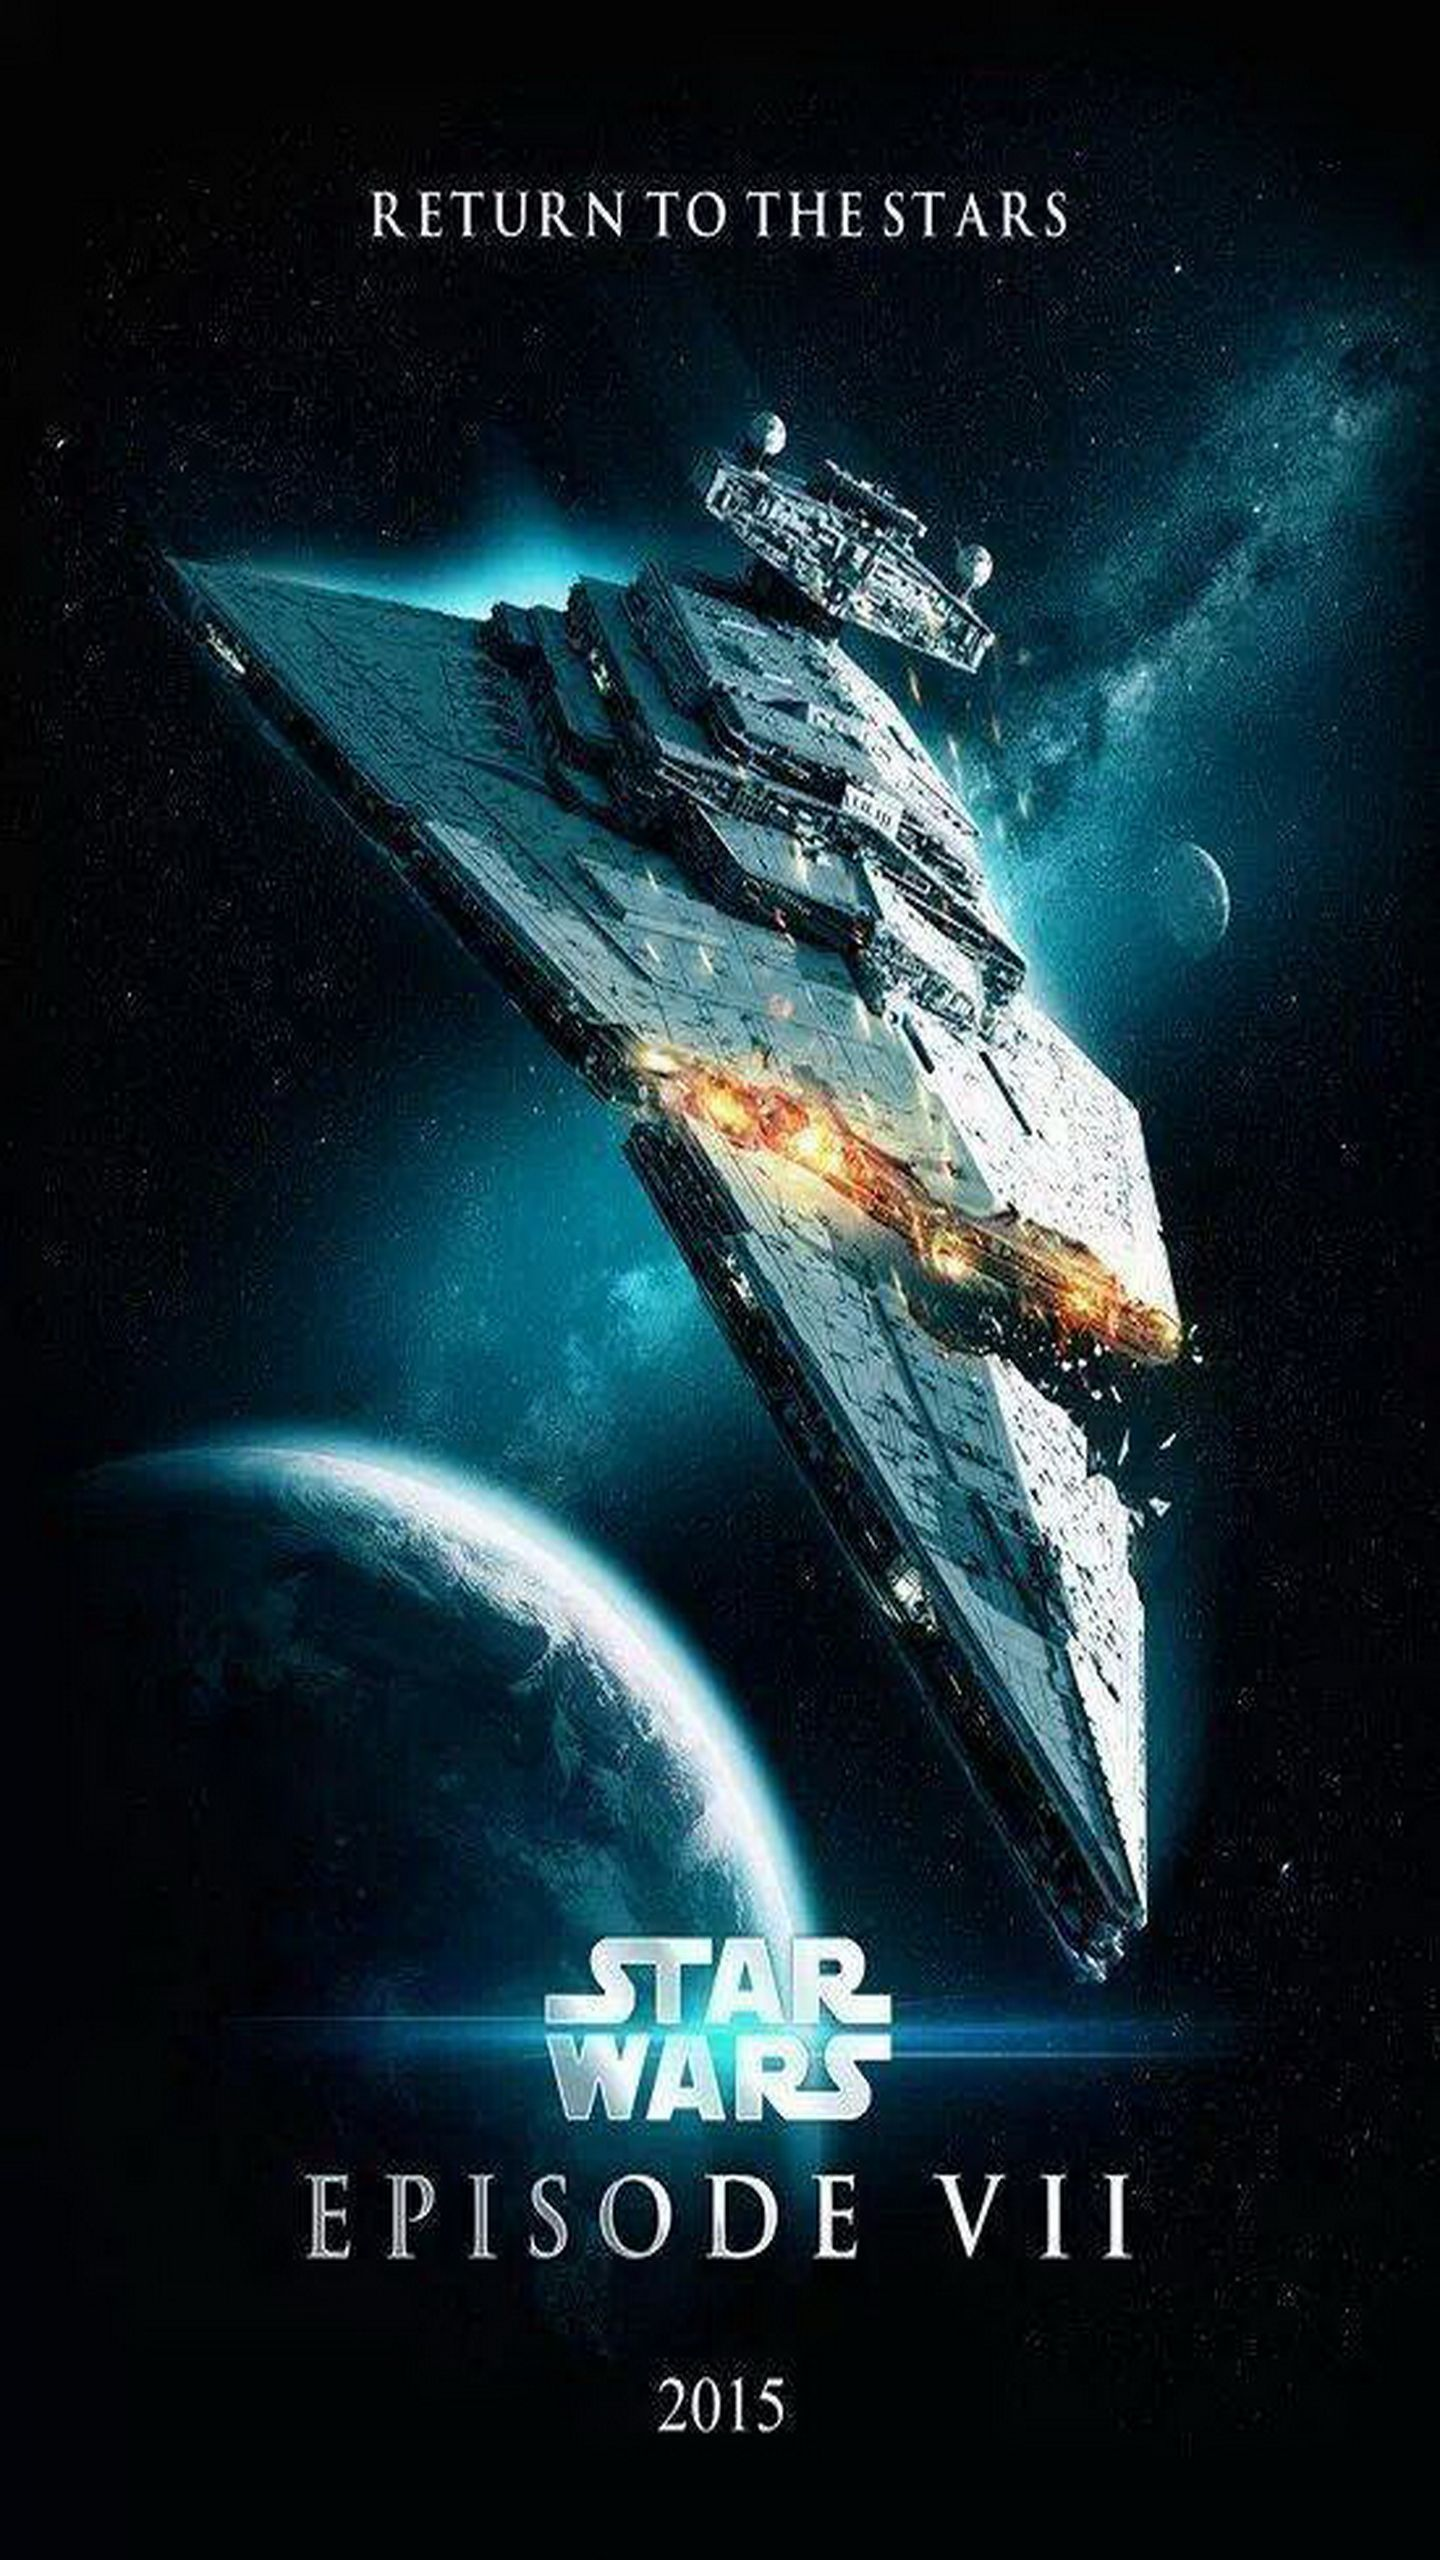 star wars episode vii the force awakens background - in the movie